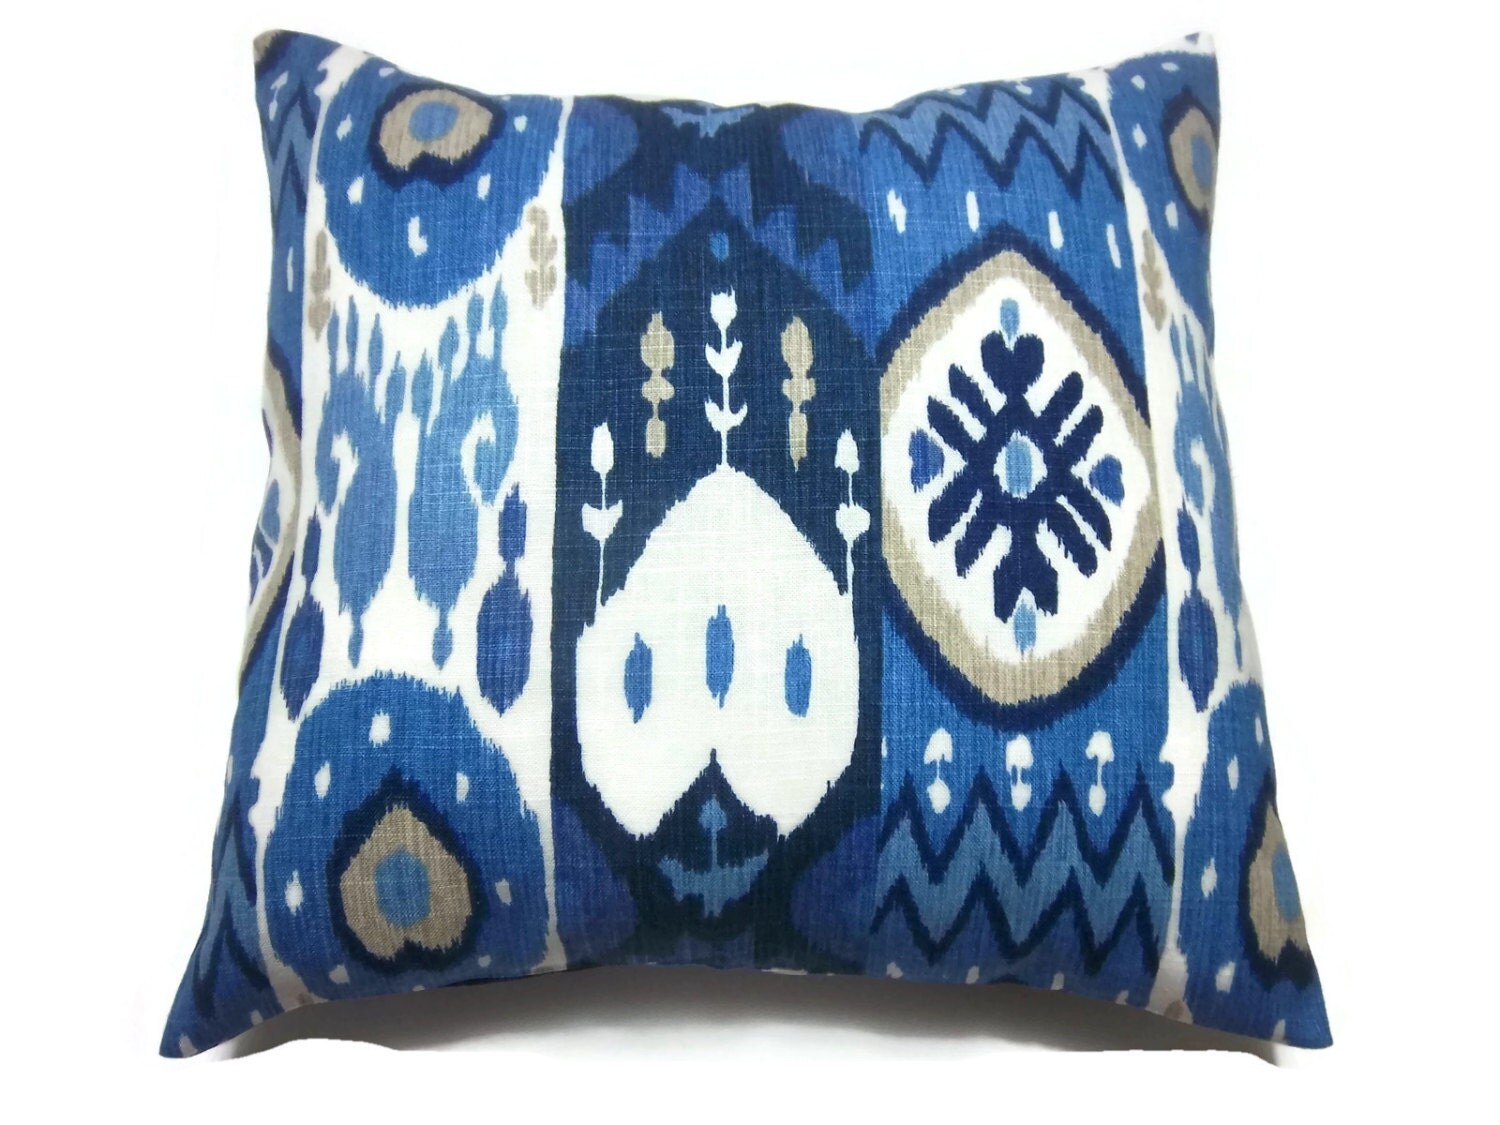 Light Blue Throw Pillow Covers : Decorative Pillow Cover Navy Blue Light Blue by LynnesThisandThat